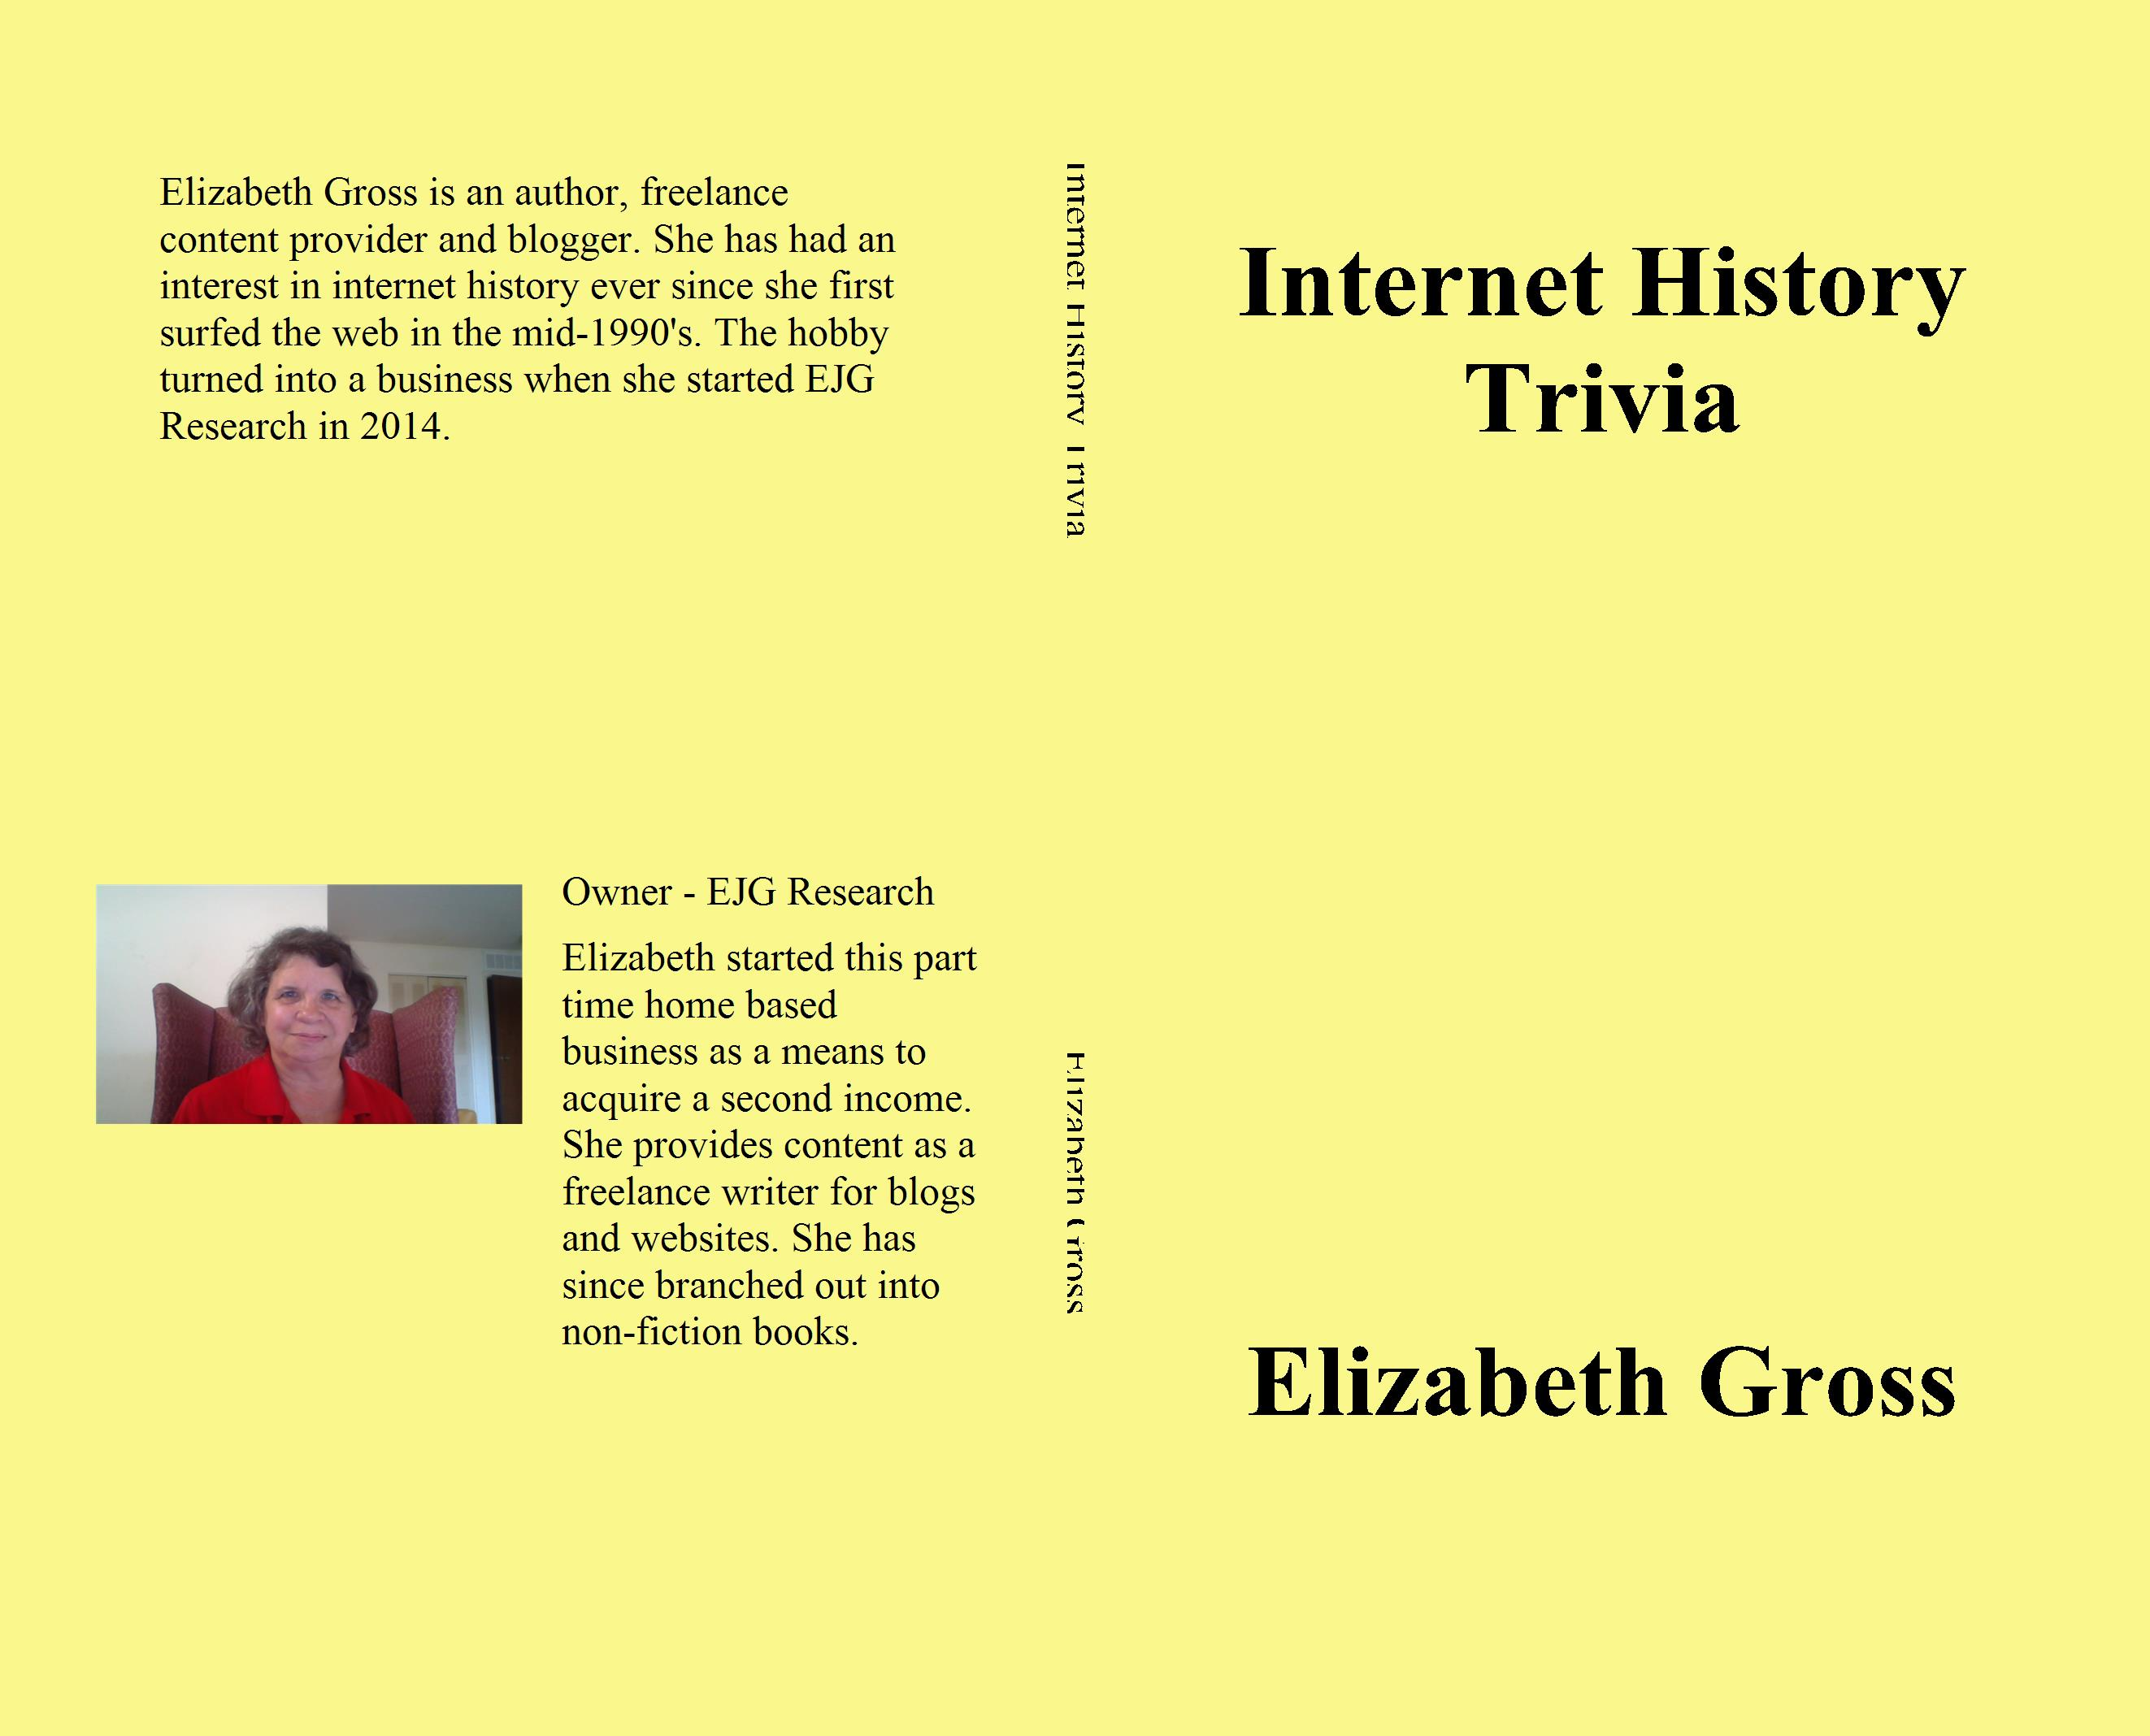 Internet History Trivia cover image